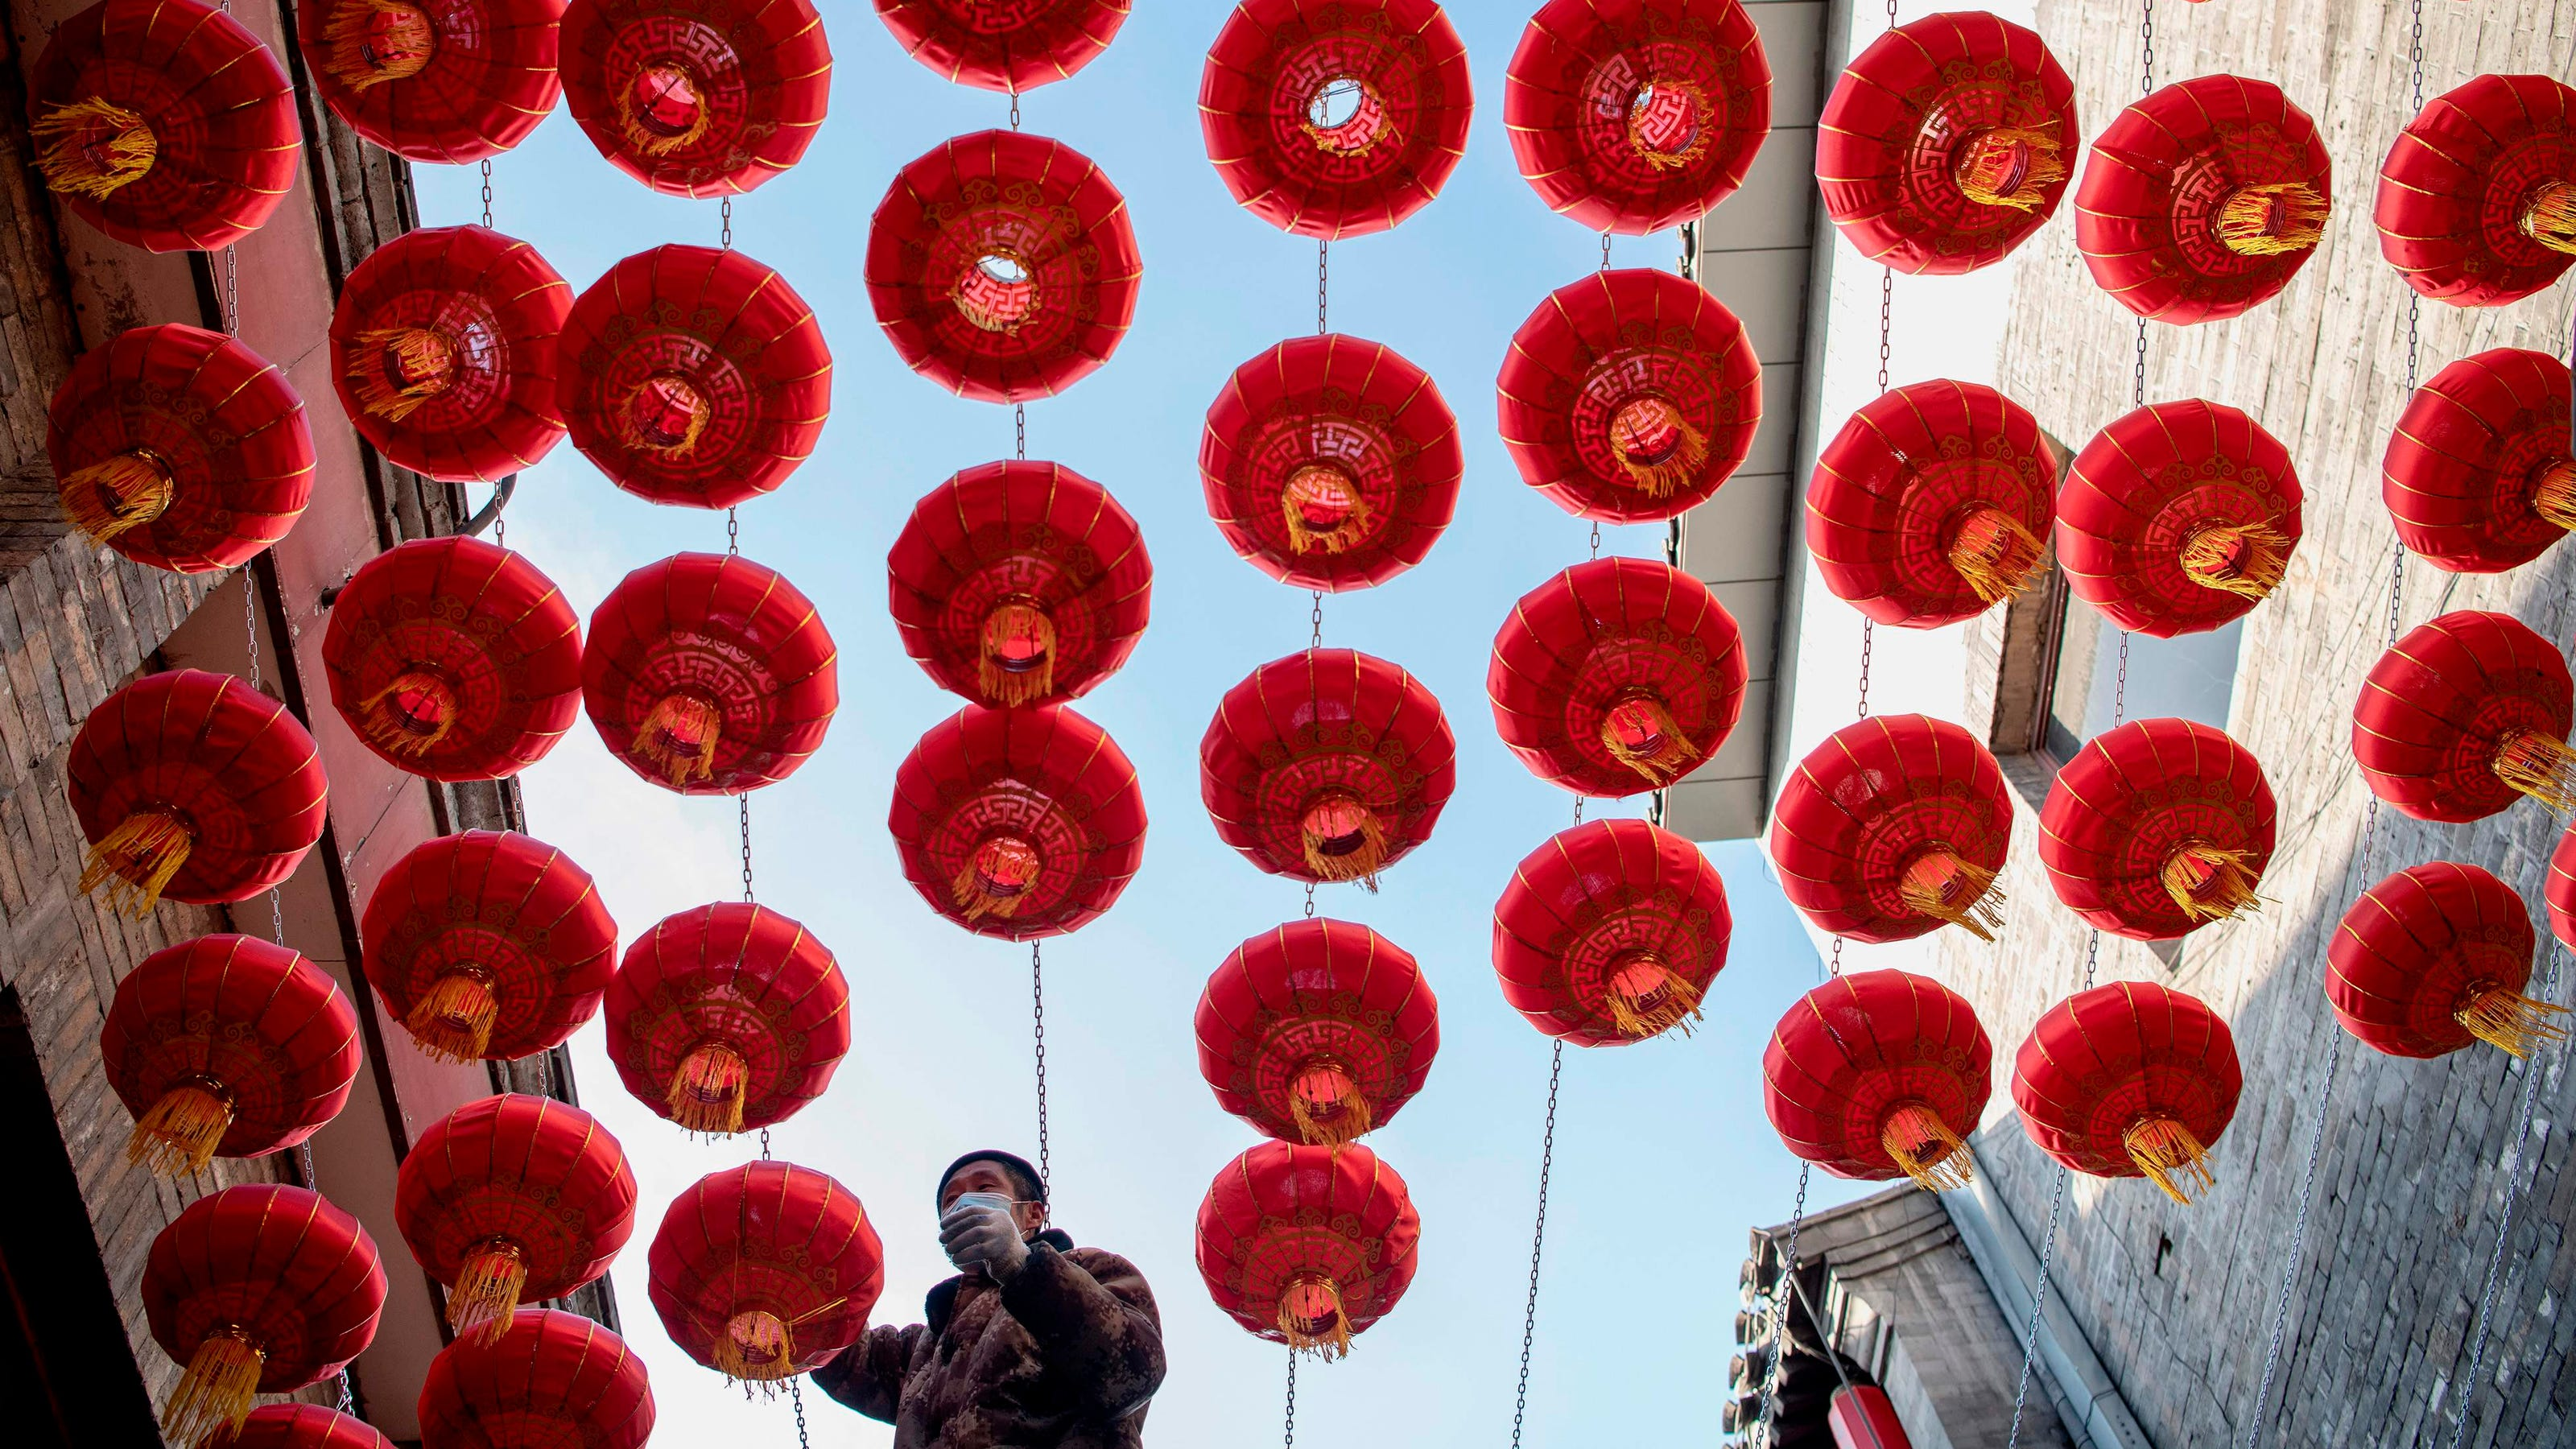 www.usatoday.com: Entering the Year of the Ox: Finding inspiration for small business in the Lunar New Year